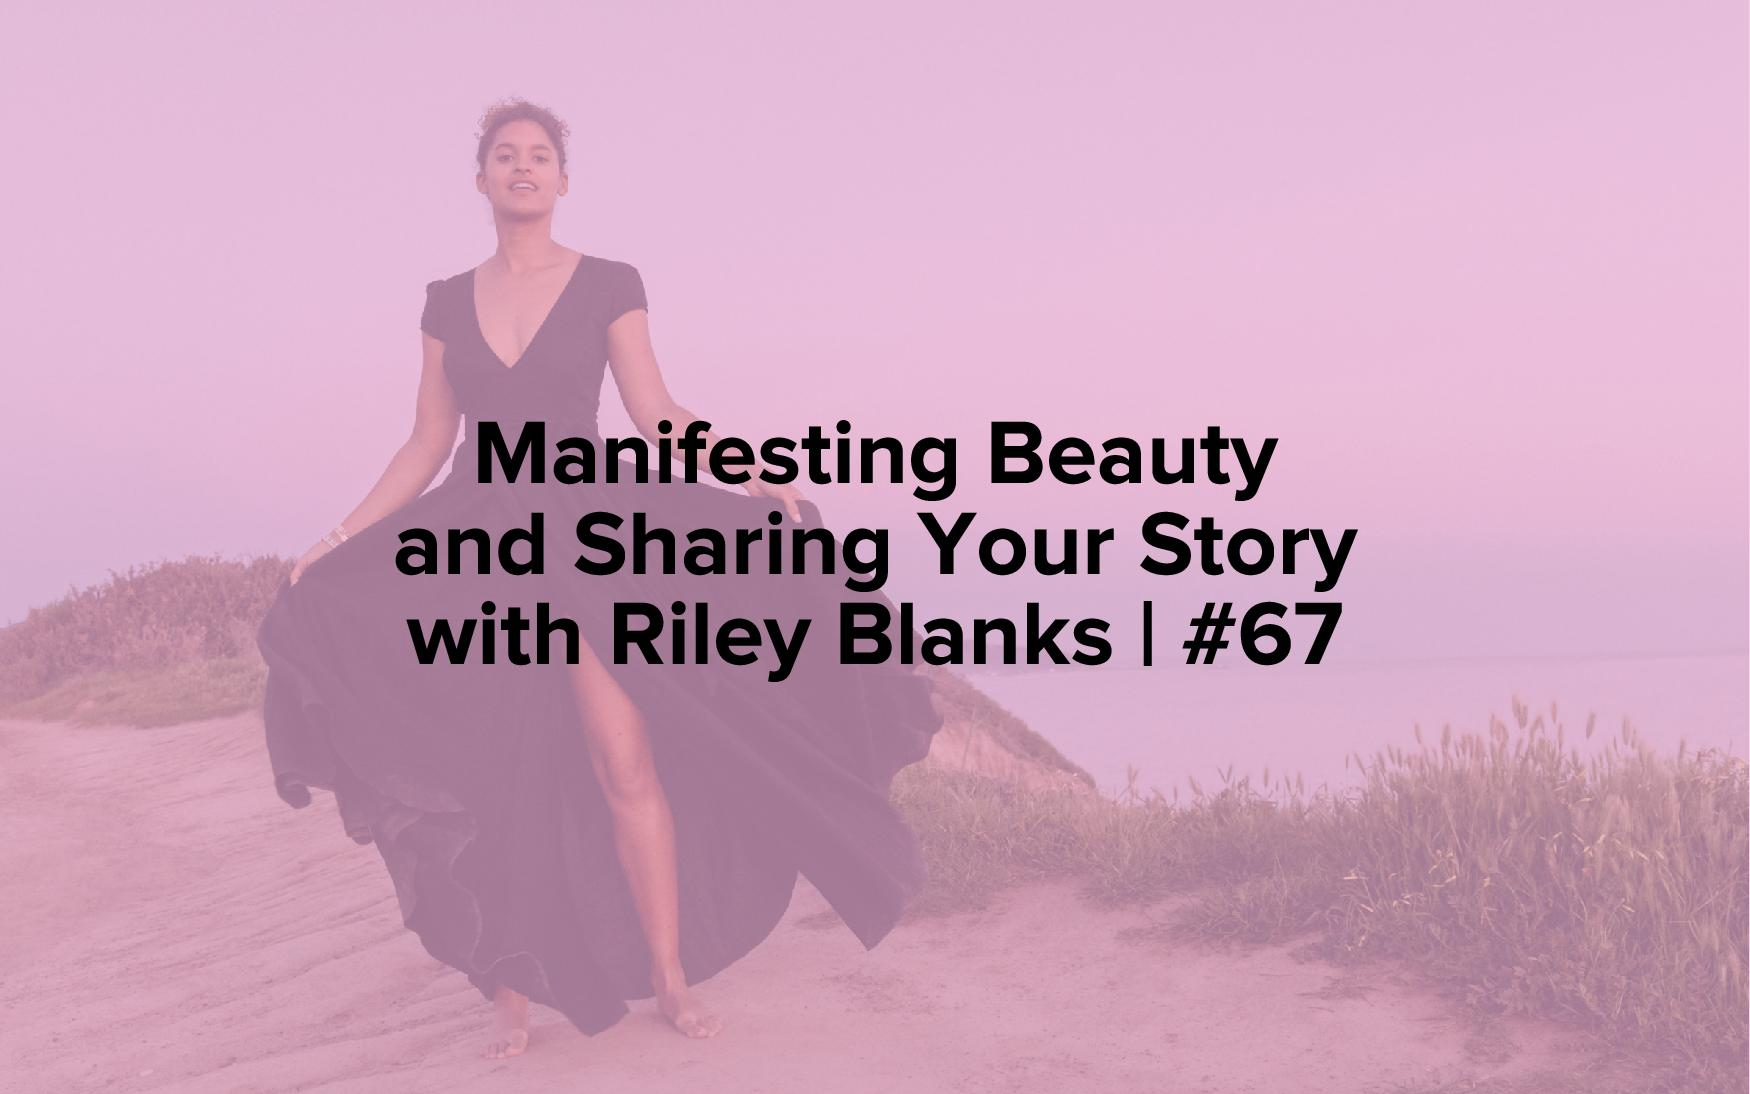 Manifesting Beauty and Sharing Your Story with Riley Blanks | #67